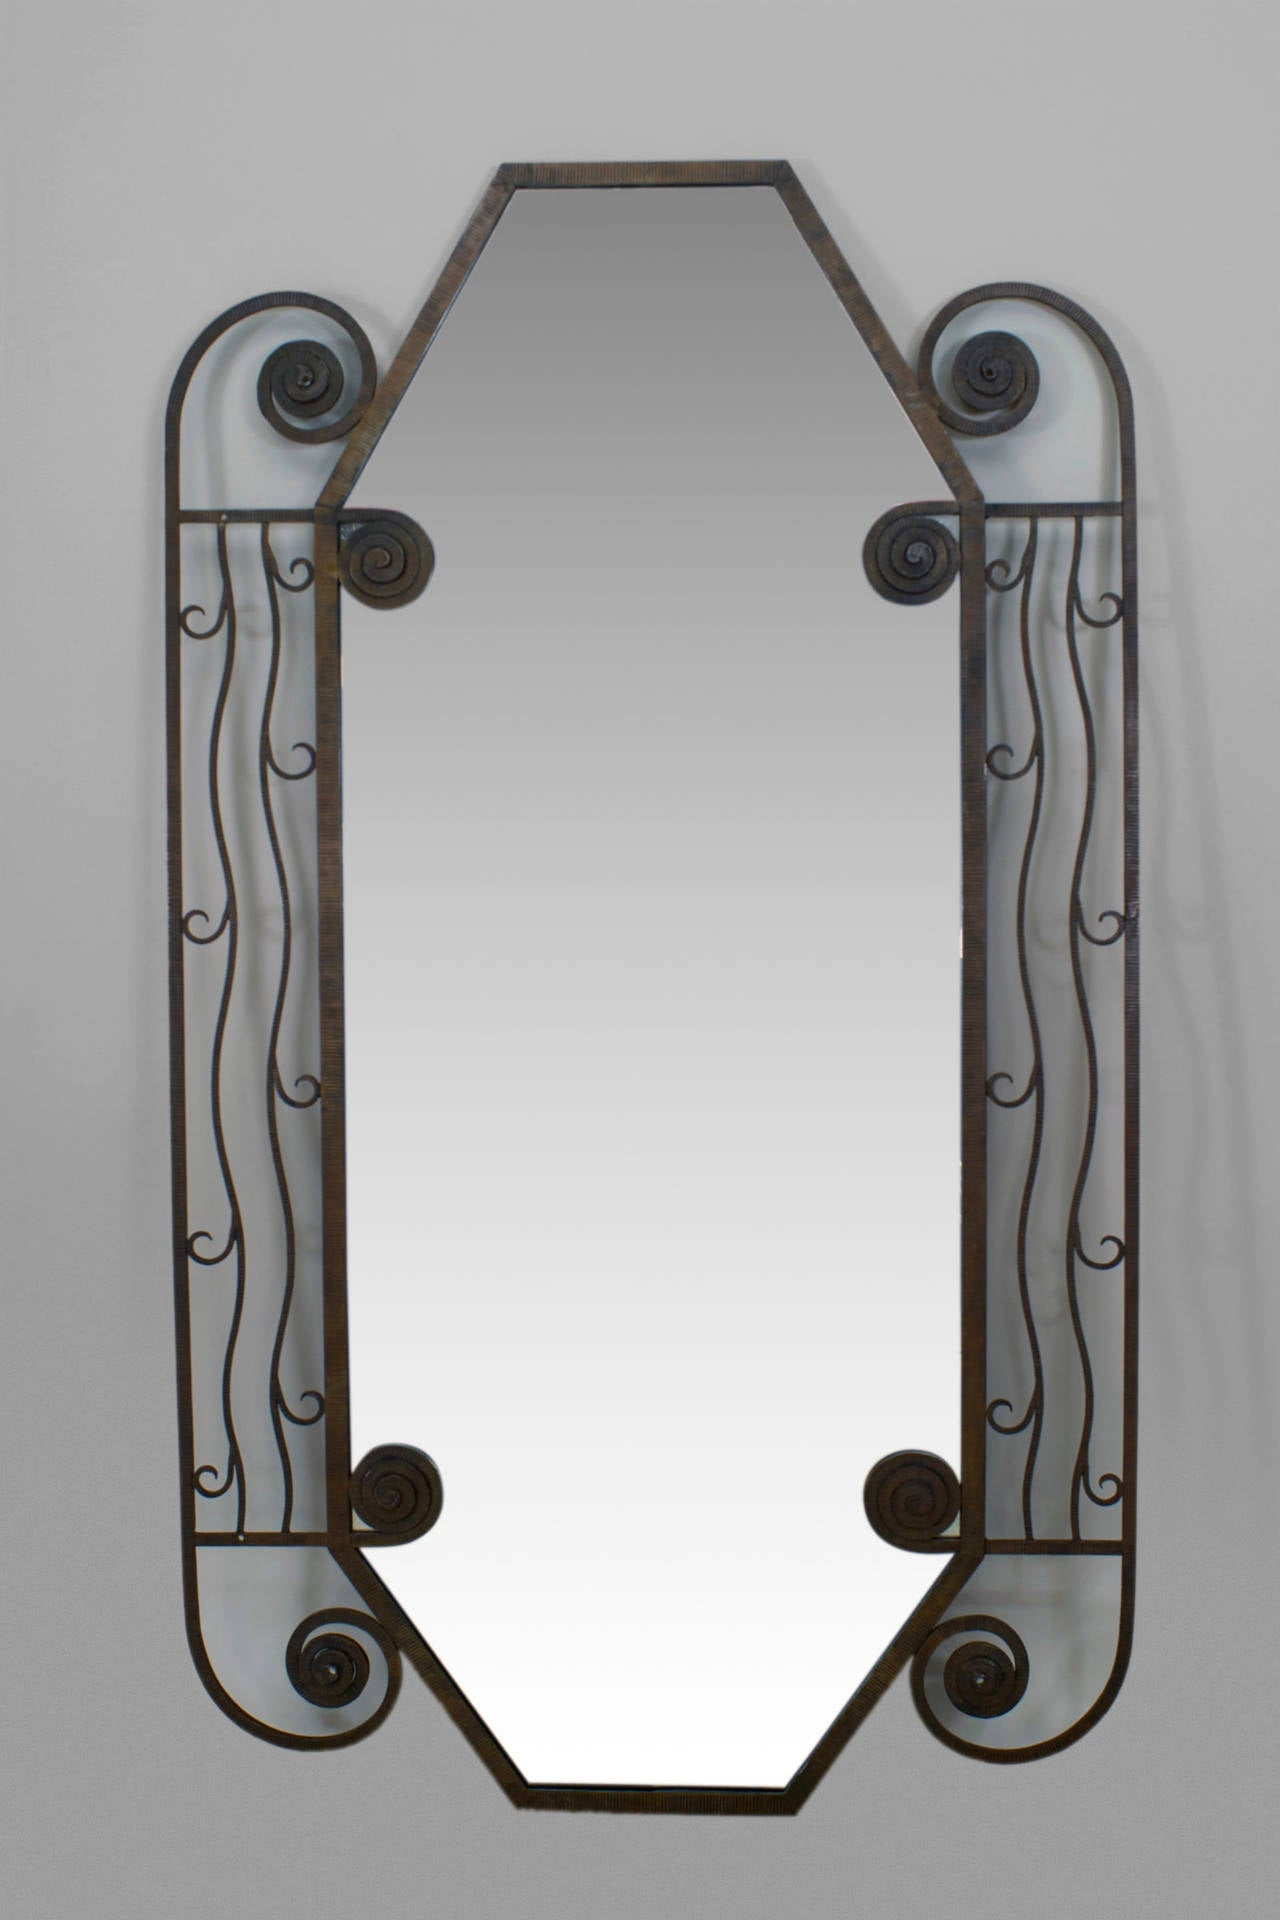 1930s french art deco iron wall mirror for sale at 1stdibs 1930s french art deco iron wall mirror 2 amipublicfo Image collections